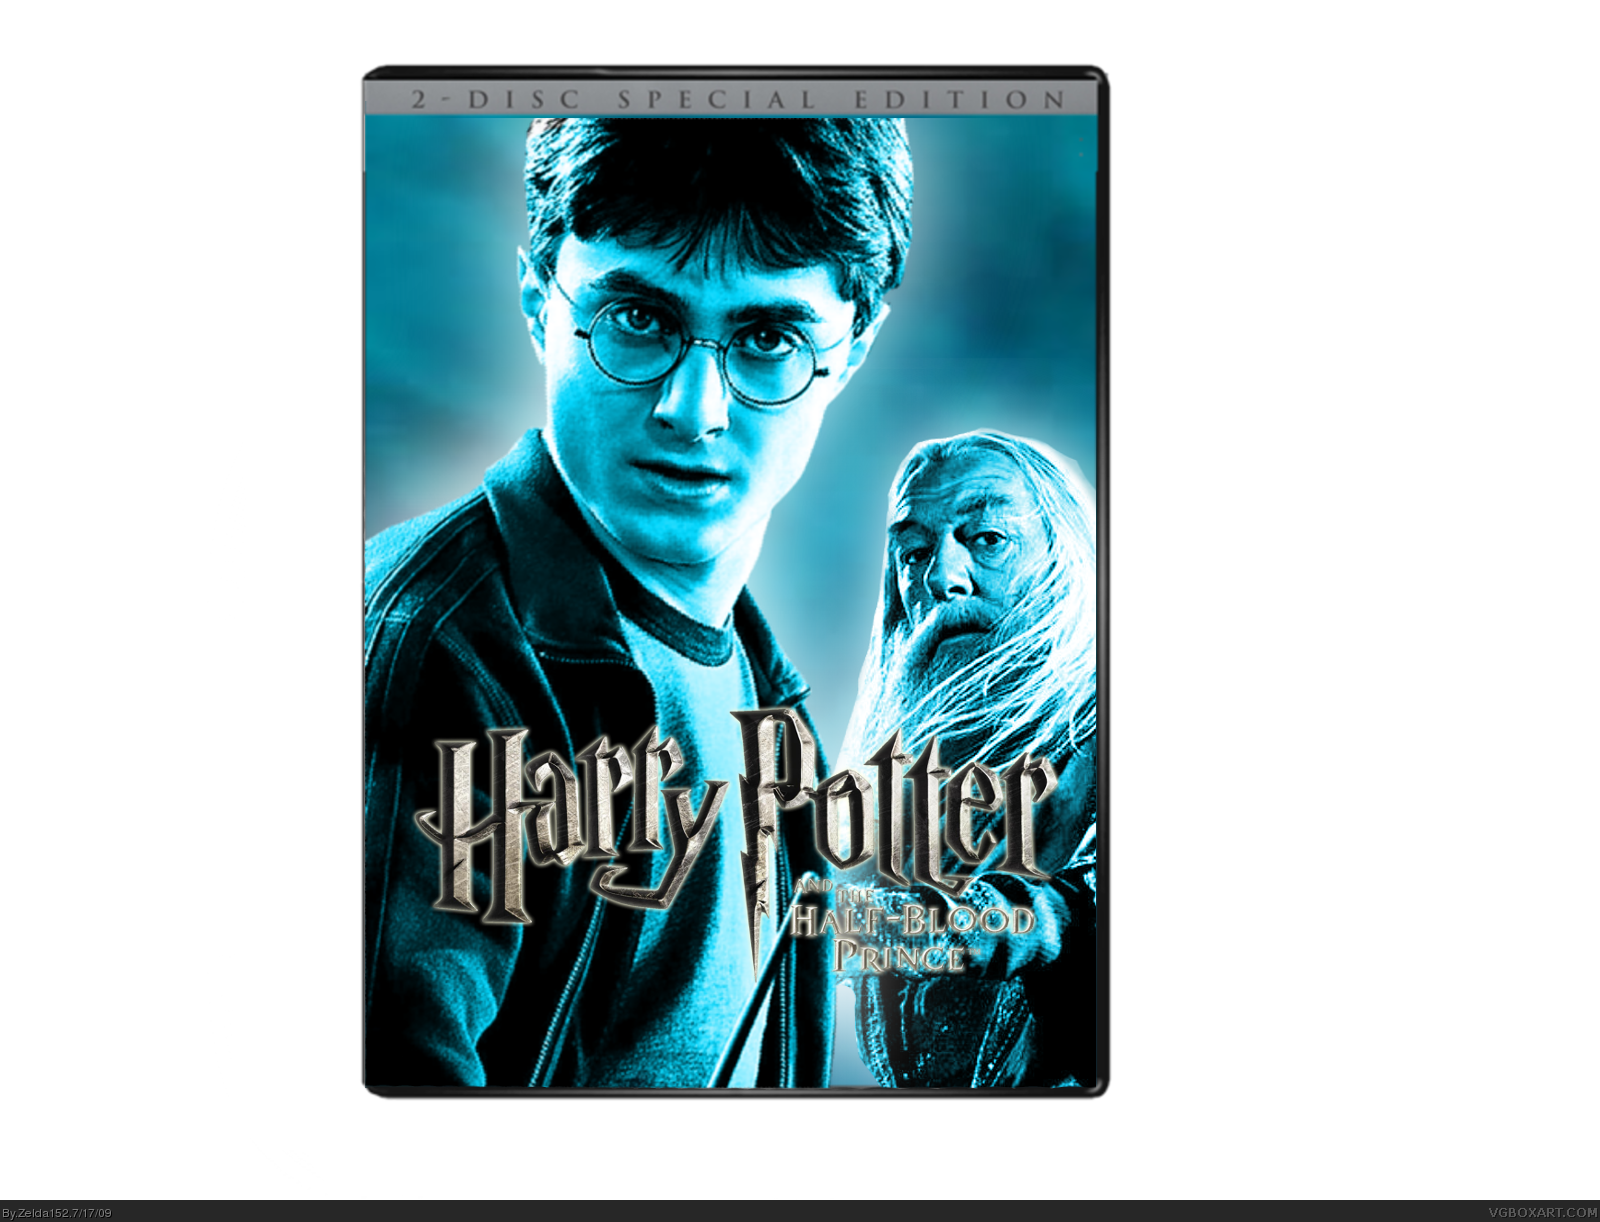 Harry Potter Book Cover Png ~ Harry potter and the half blood prince movies box art